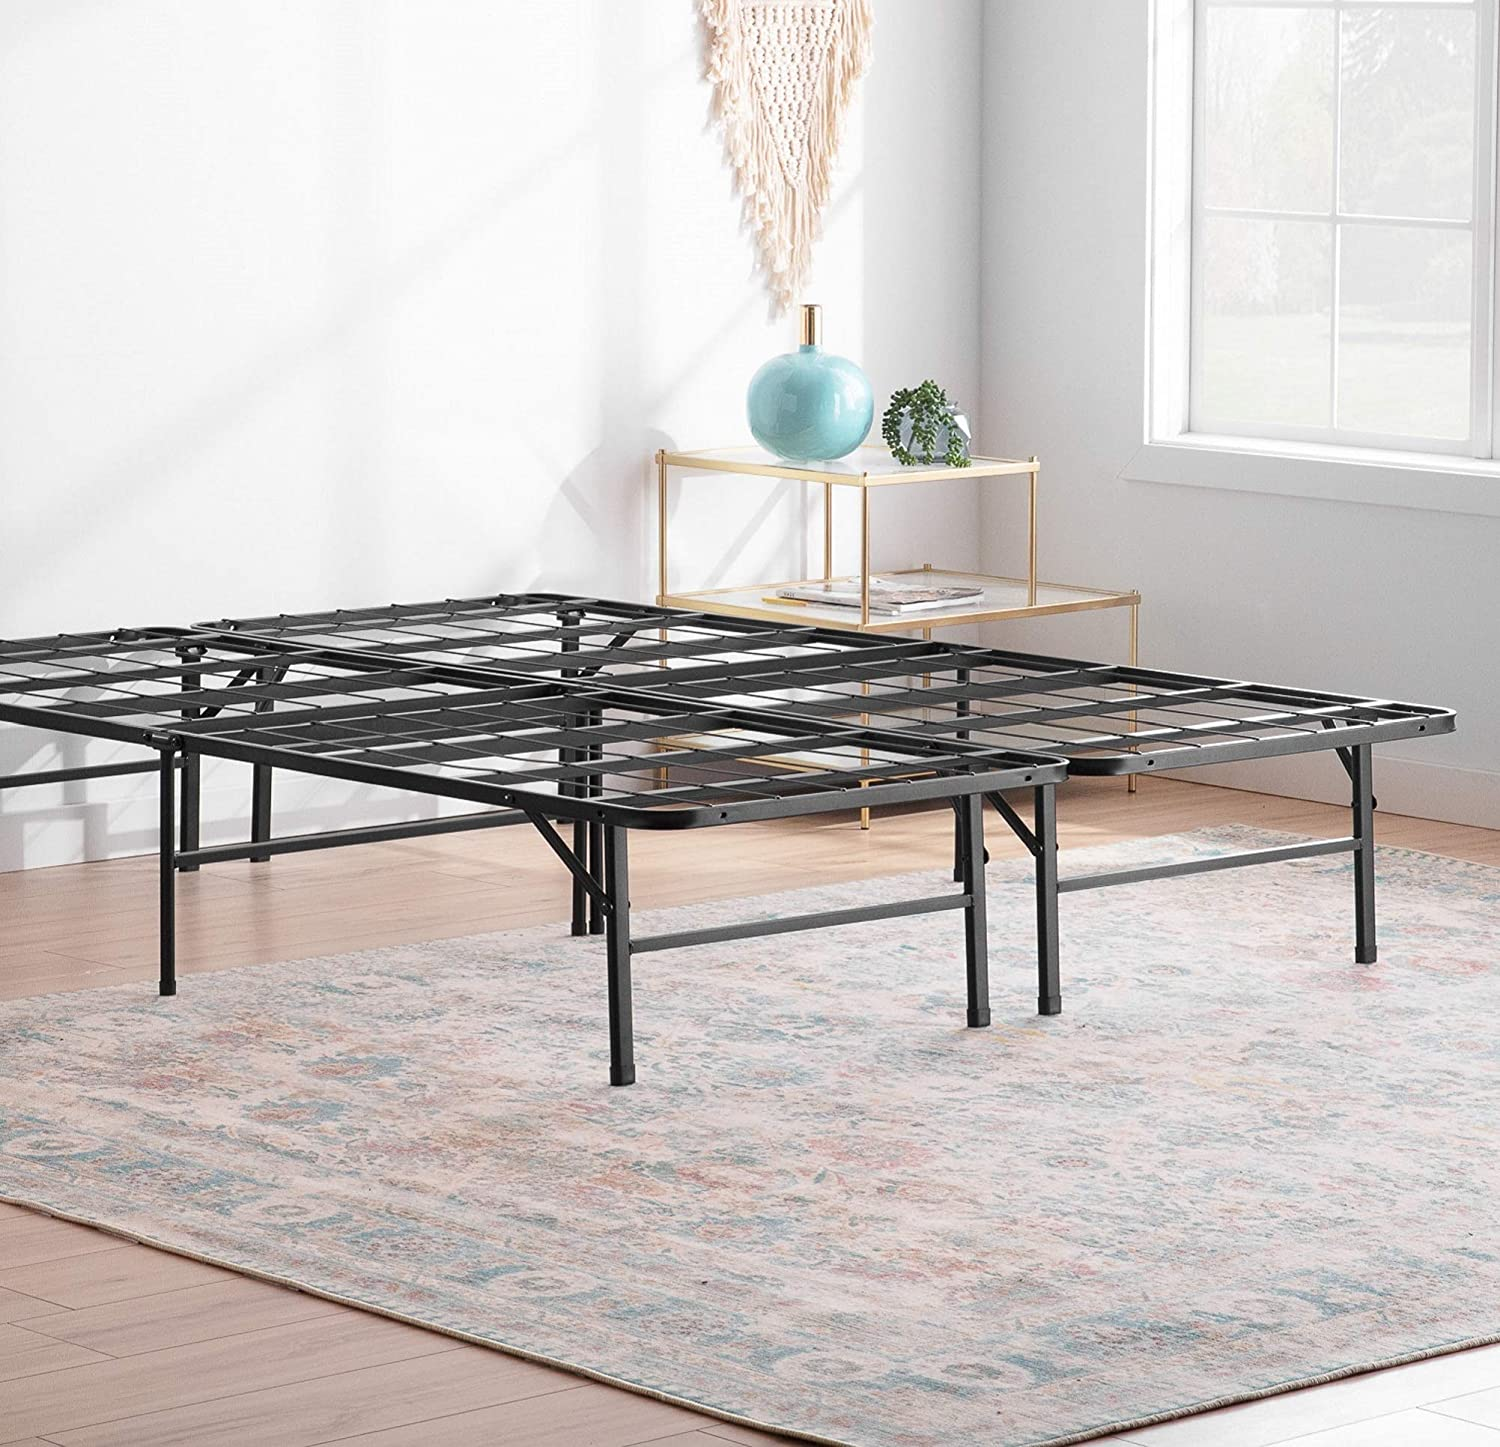 Amazon Com Linenspa 14 Inch Folding Metal Platform Bed Frame 13 Inches Of Clearance Tons Of Under Bed Storage Heavy Duty Construction 5 Minute Assembly Twin Furniture Decor